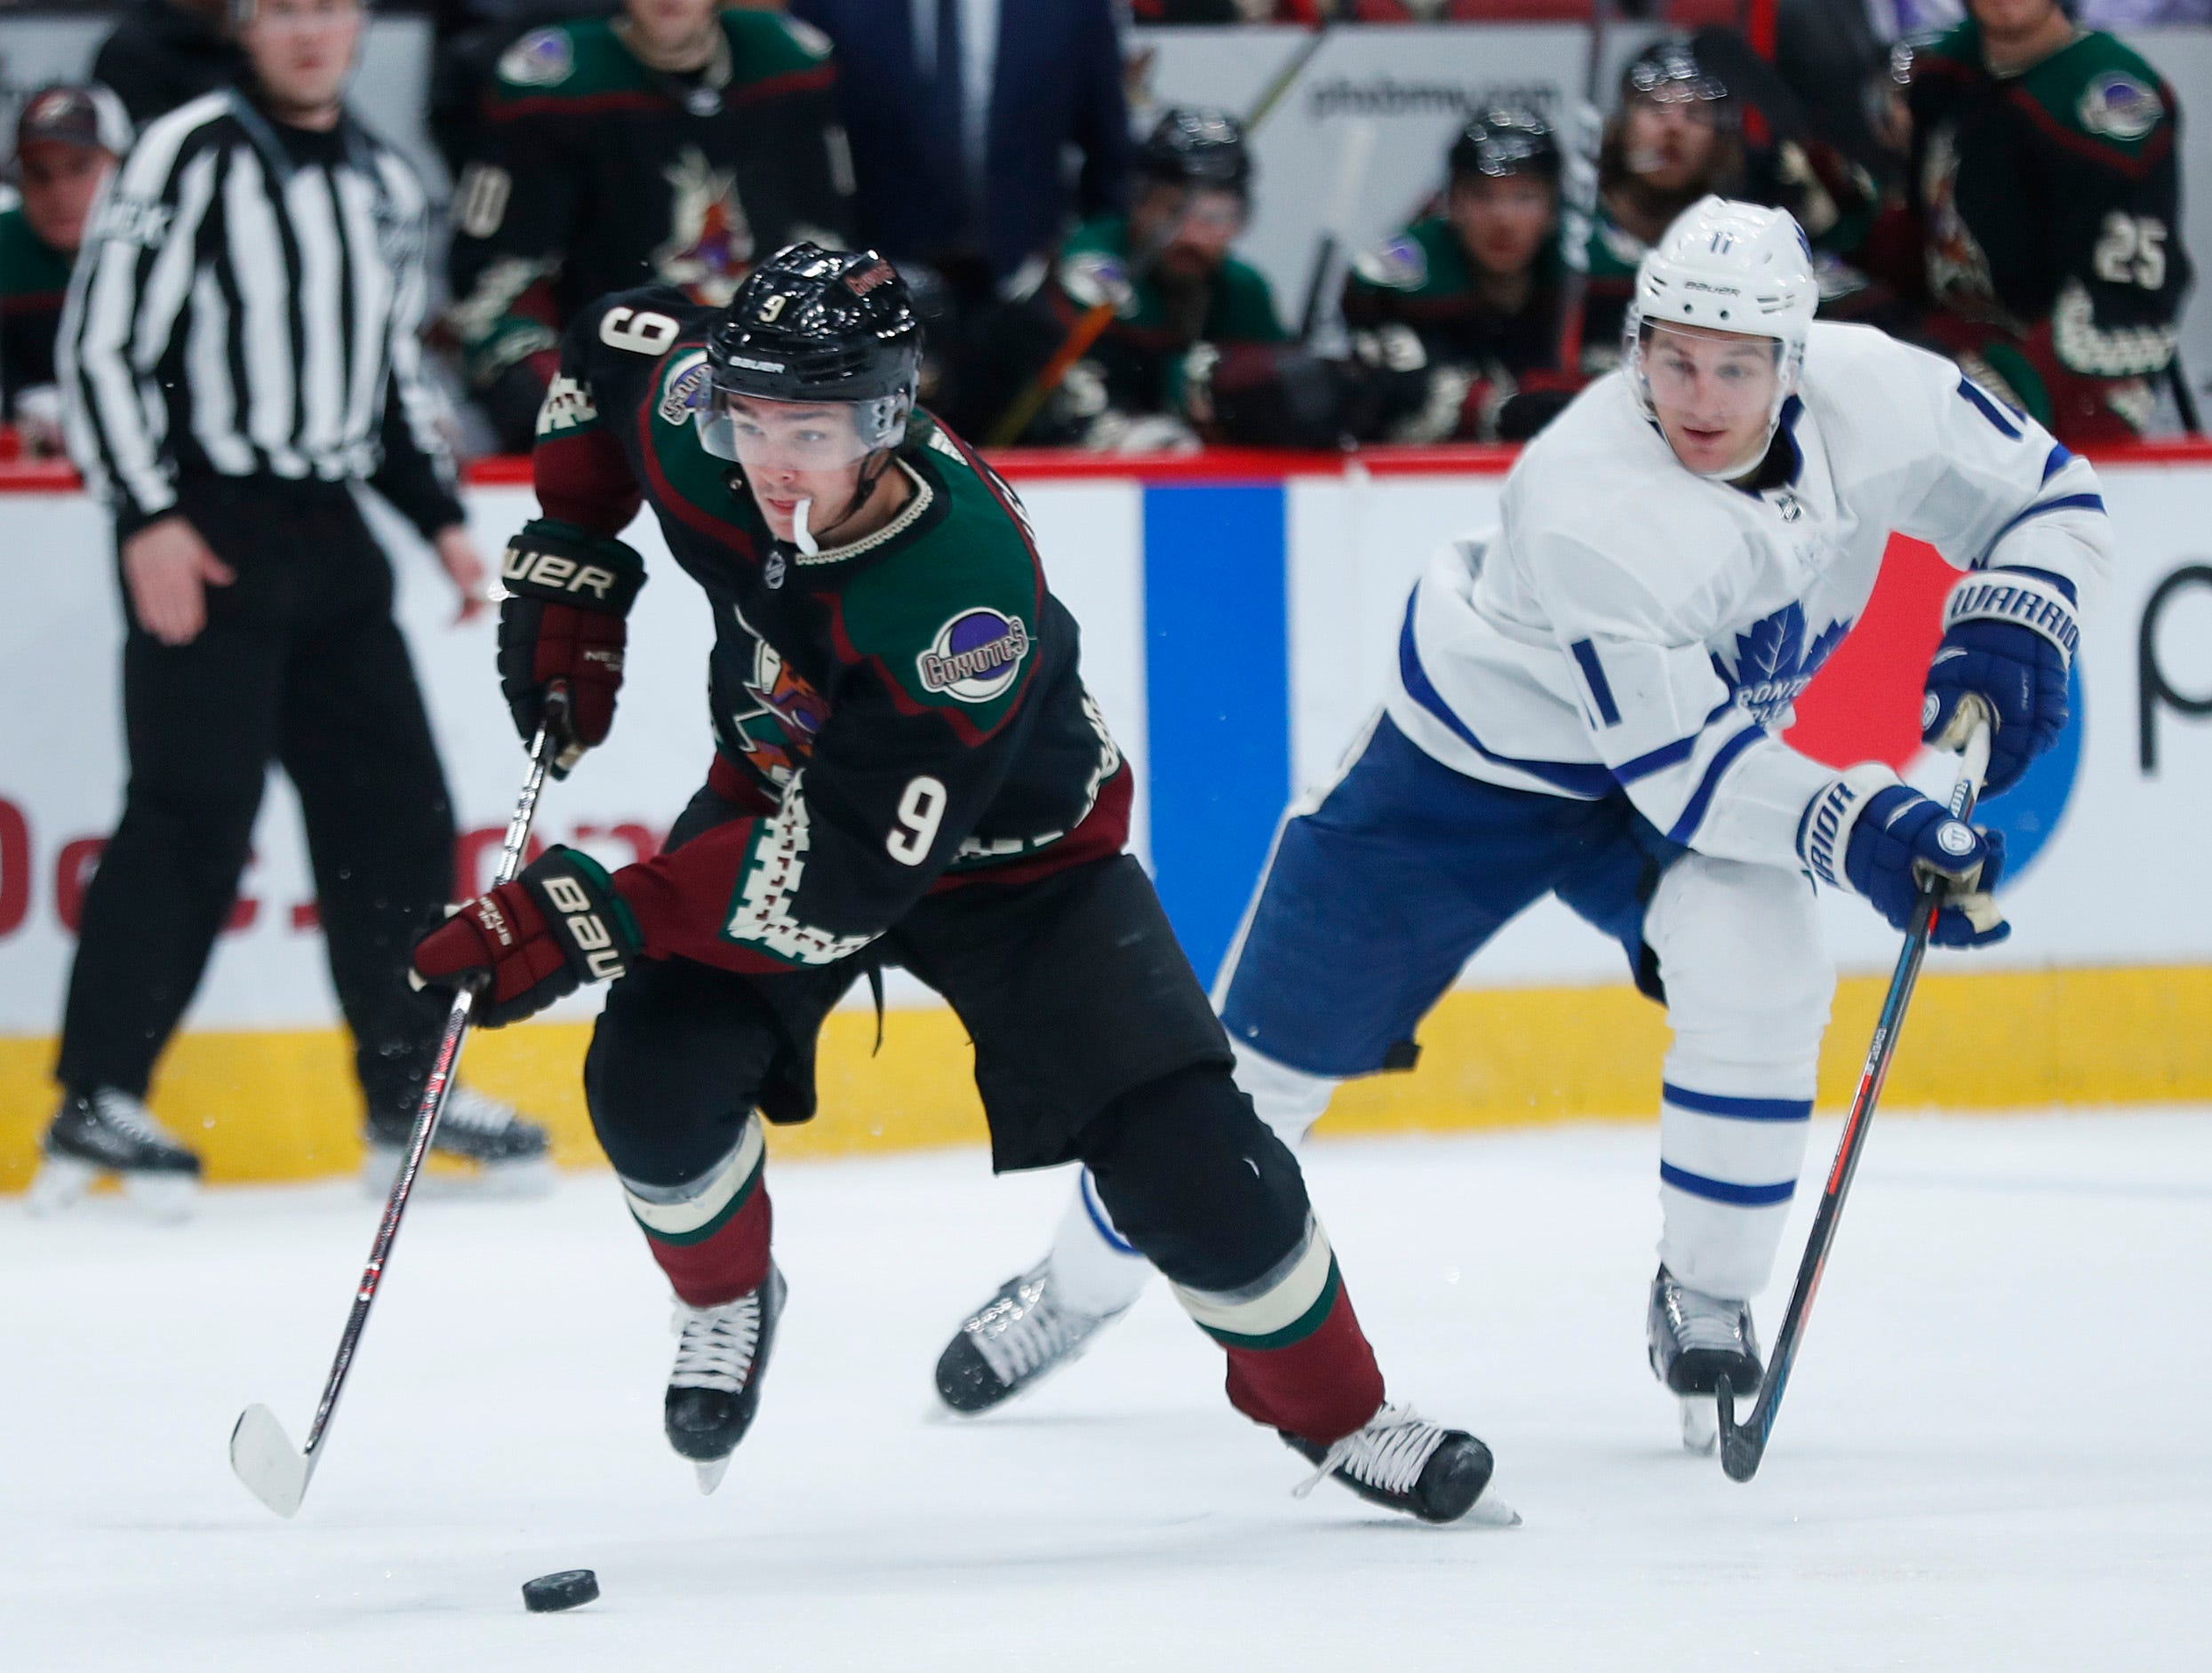 Coyotes' Clayton Keller (9) skates against Maple Leafs' Zach Hyman (11) during the second period at Gila River Arena in Glendale, Ariz. on February 16, 2019.